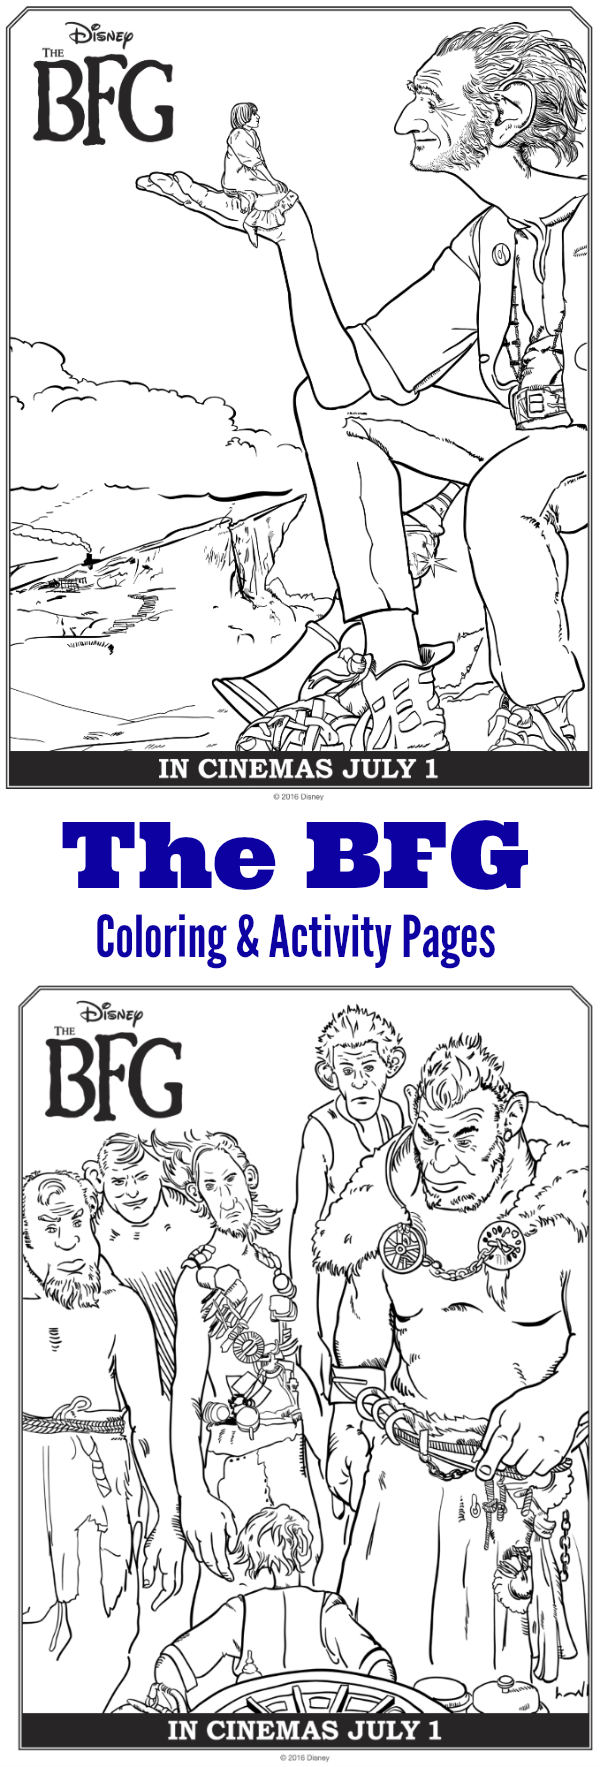 Disney's The BFG Coloring Pages and Activity Pages including a Gobblefunk dictionary.